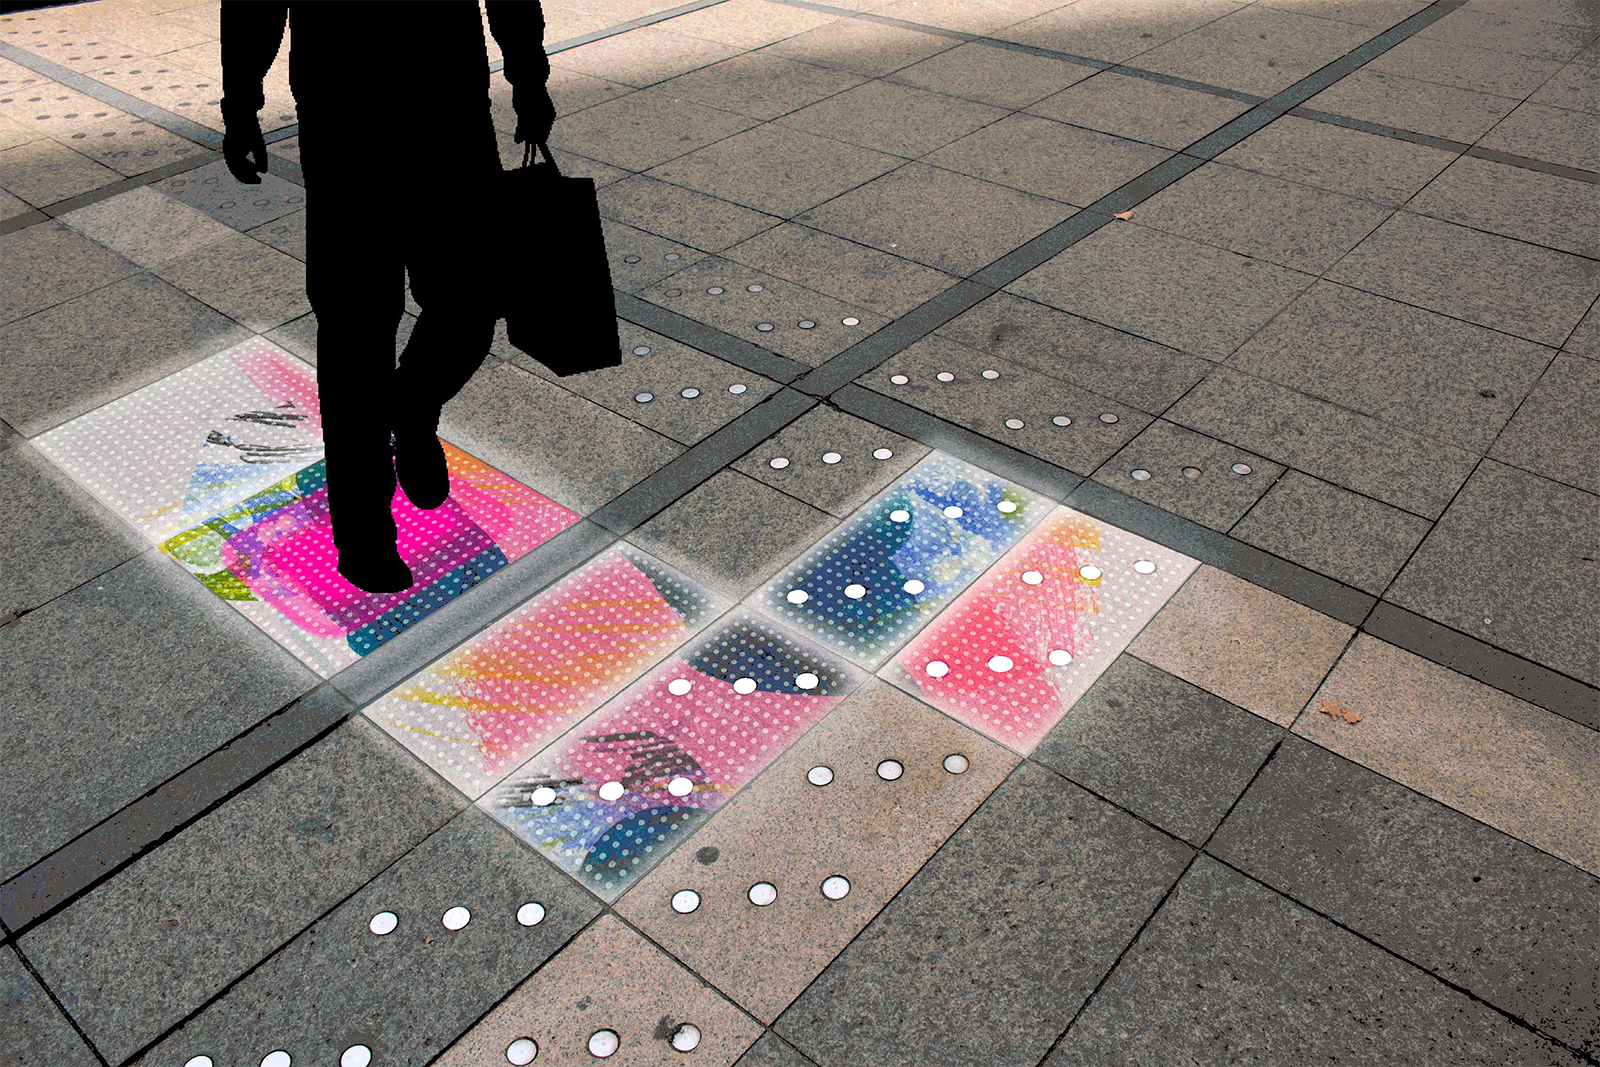 Responsive LED floor by Wendy San